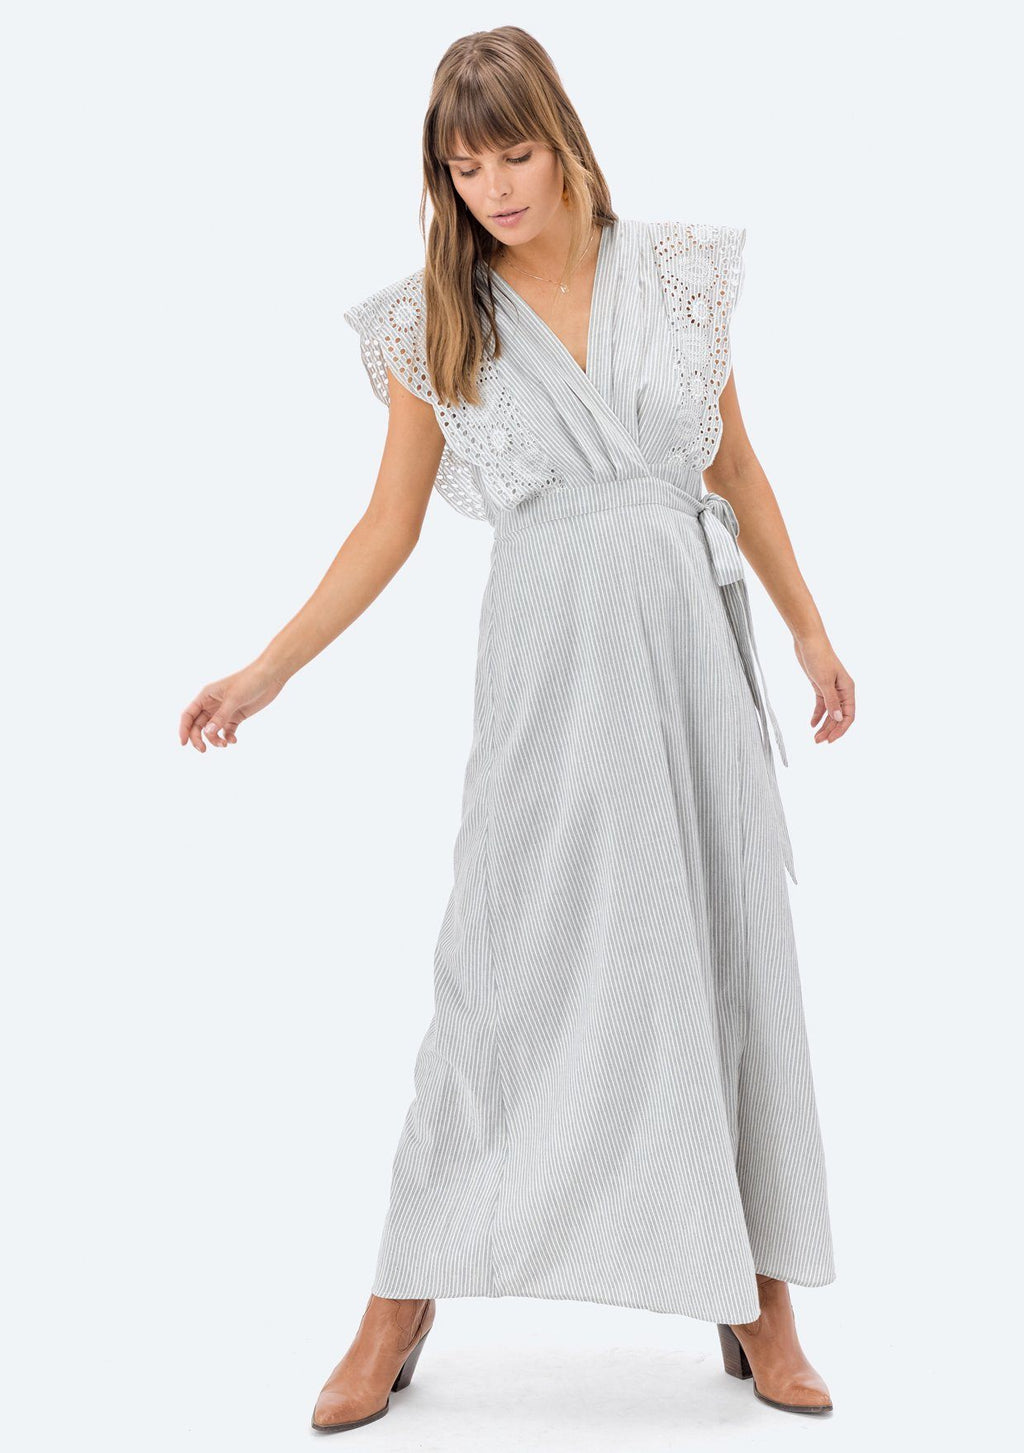 LOVESTITCH, DRESS, LOVESTITCH| Yarn Dye Striped Sleeveless Wrap Dress with Embroidery - Edgar Martha's Vineyard